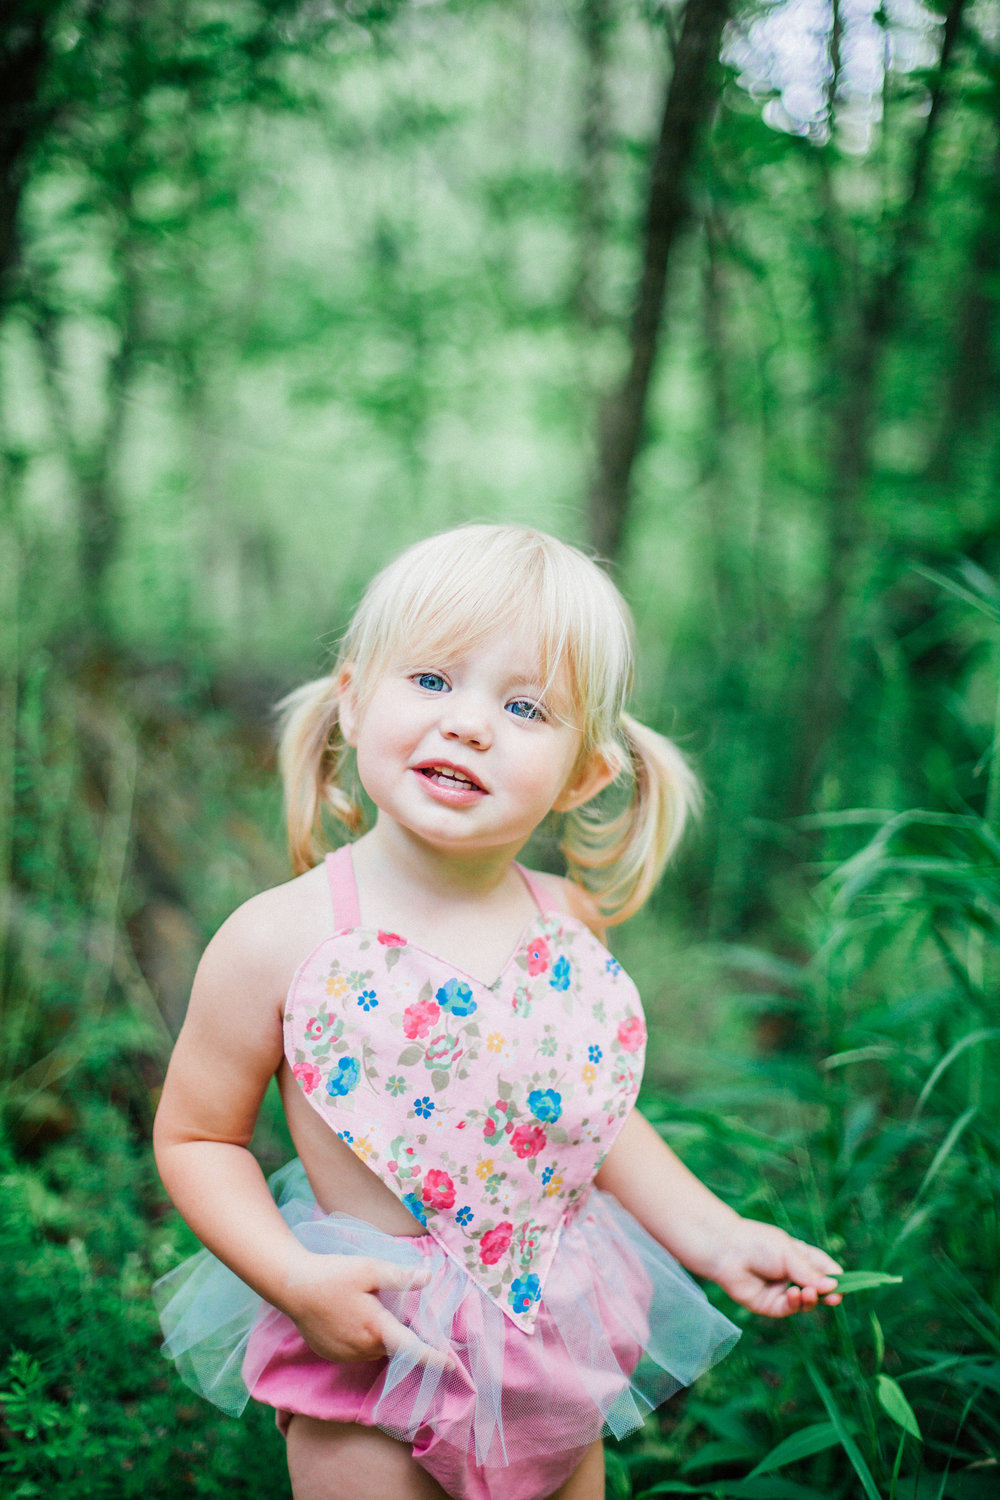 rope-mill-park-woodstock-family-photographer-angela-elliott-wingard-two-year-old-photoshoot-42.jpg